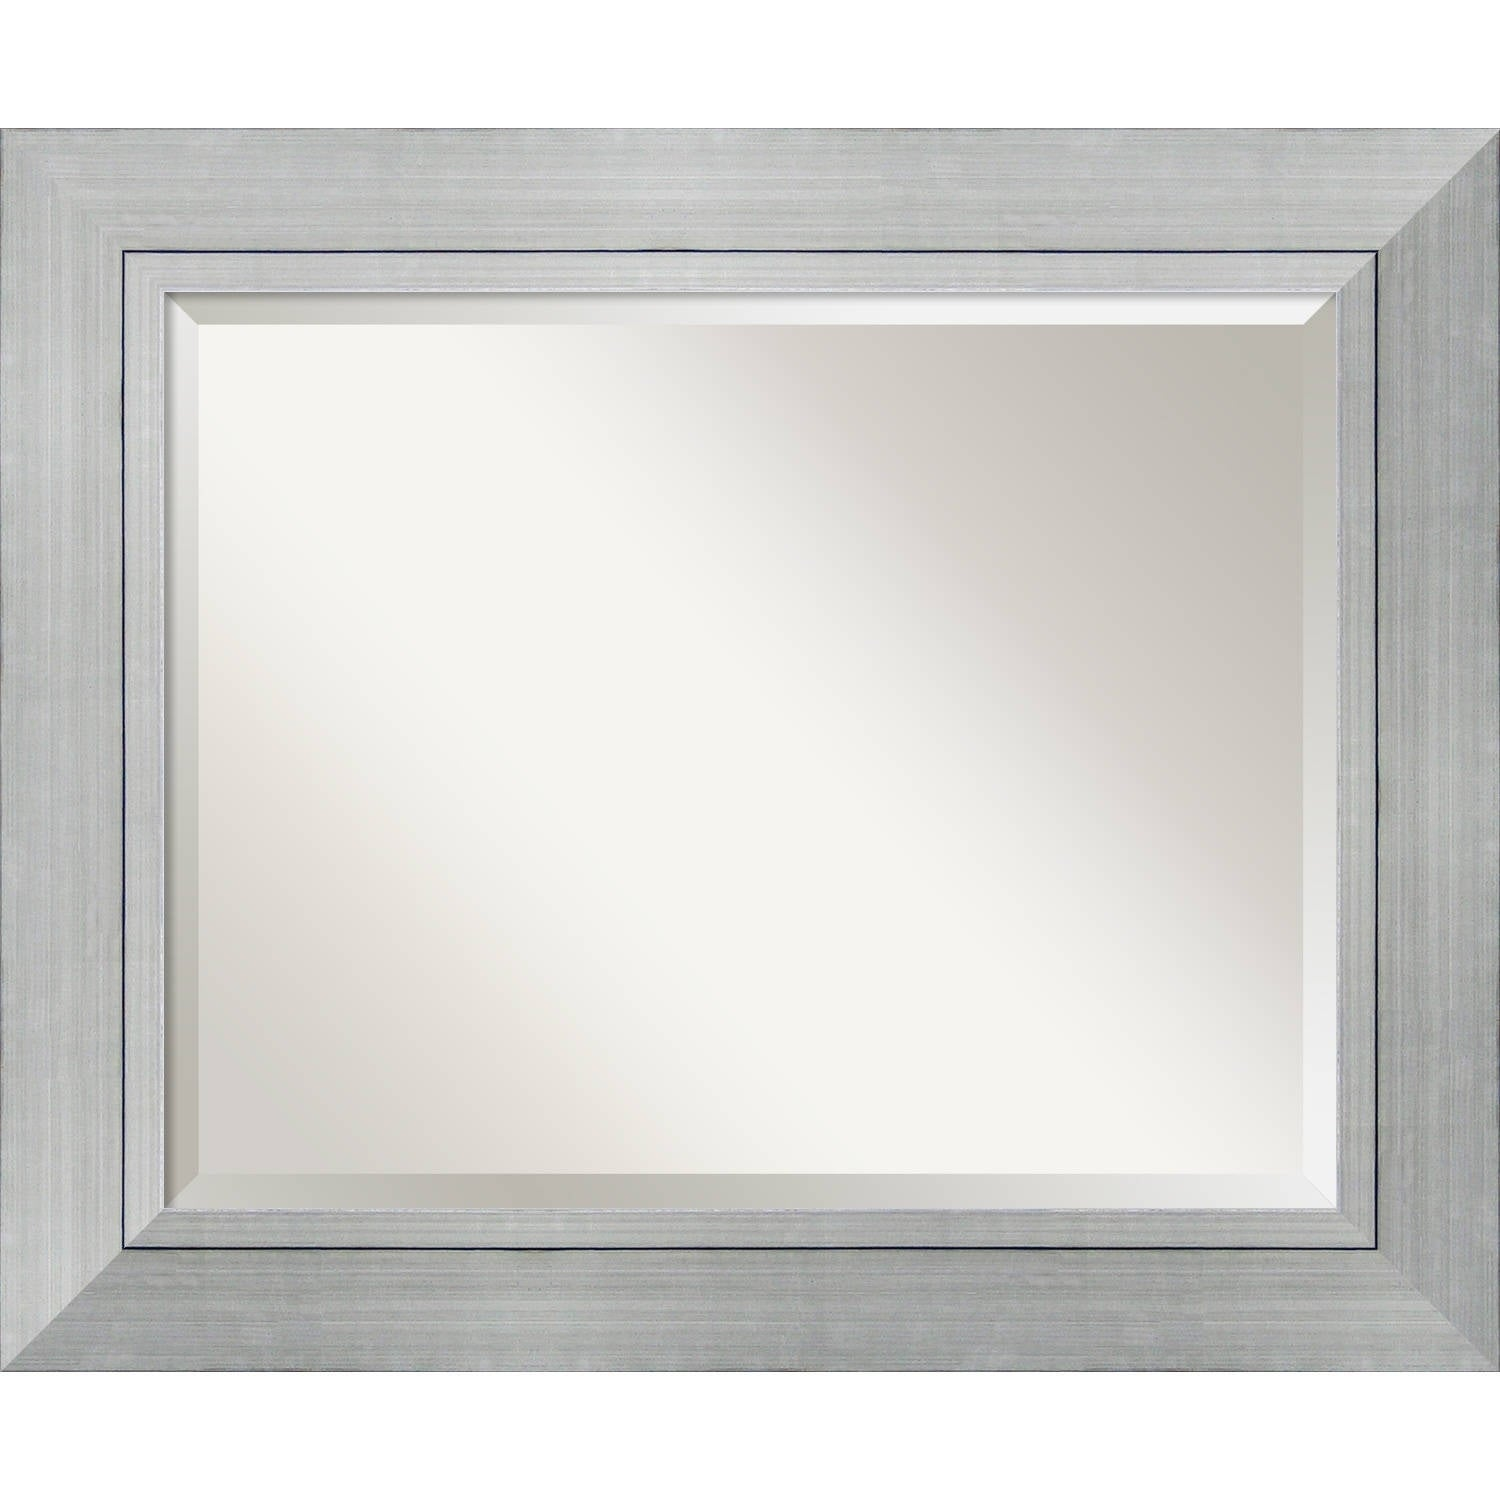 Bathroom Mirror Large Romano Silver 36 X 30 Inch 29 25 35 1 149 Inches Deep